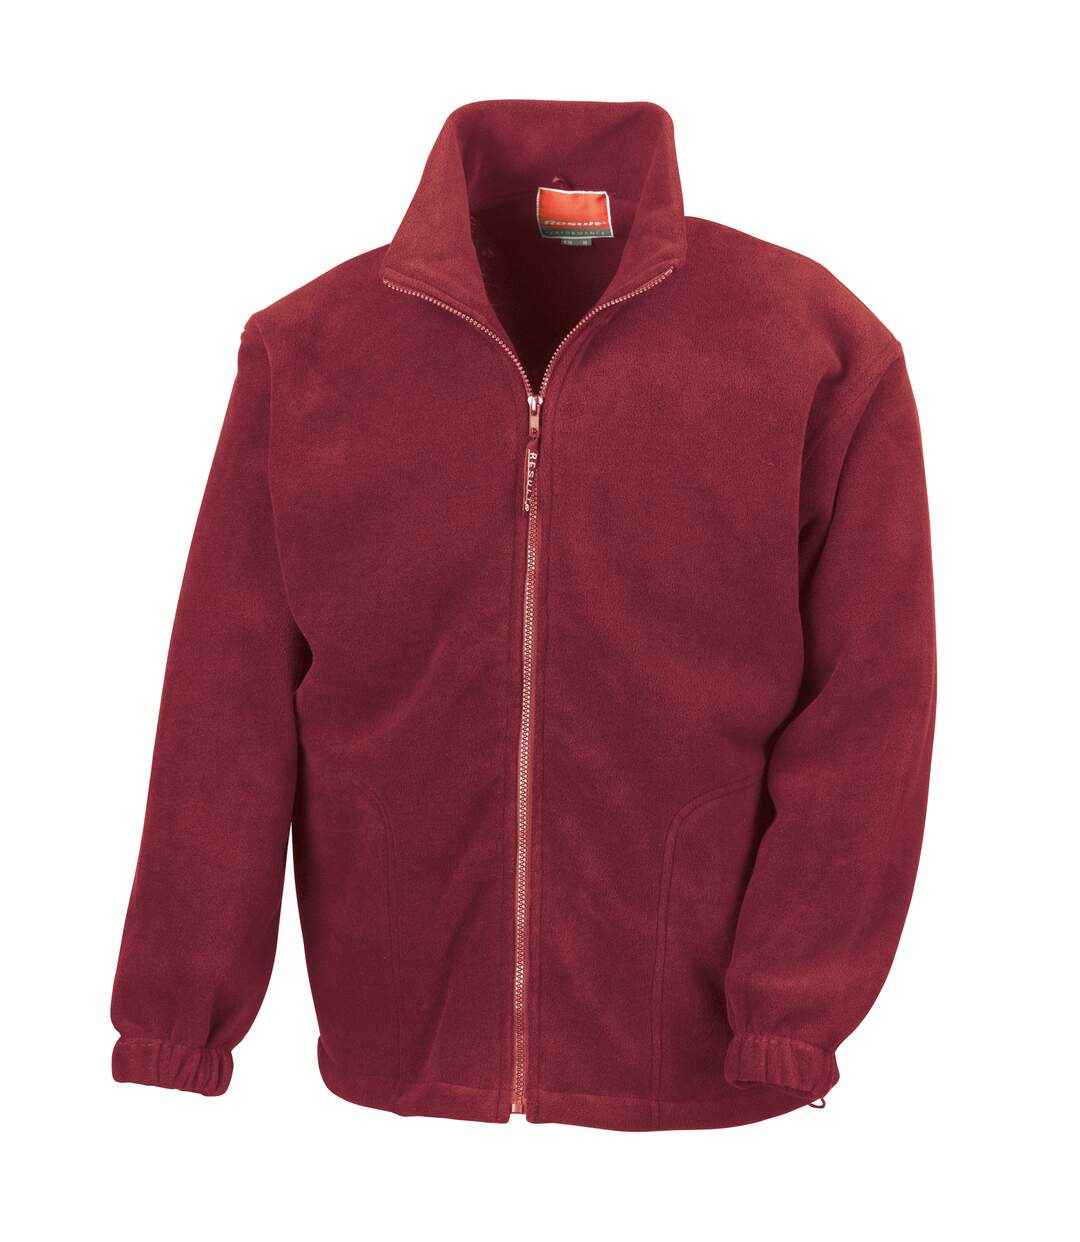 Result Mens Full Zip Active Fleece Anti Pilling Jacket (Red) - UTBC922